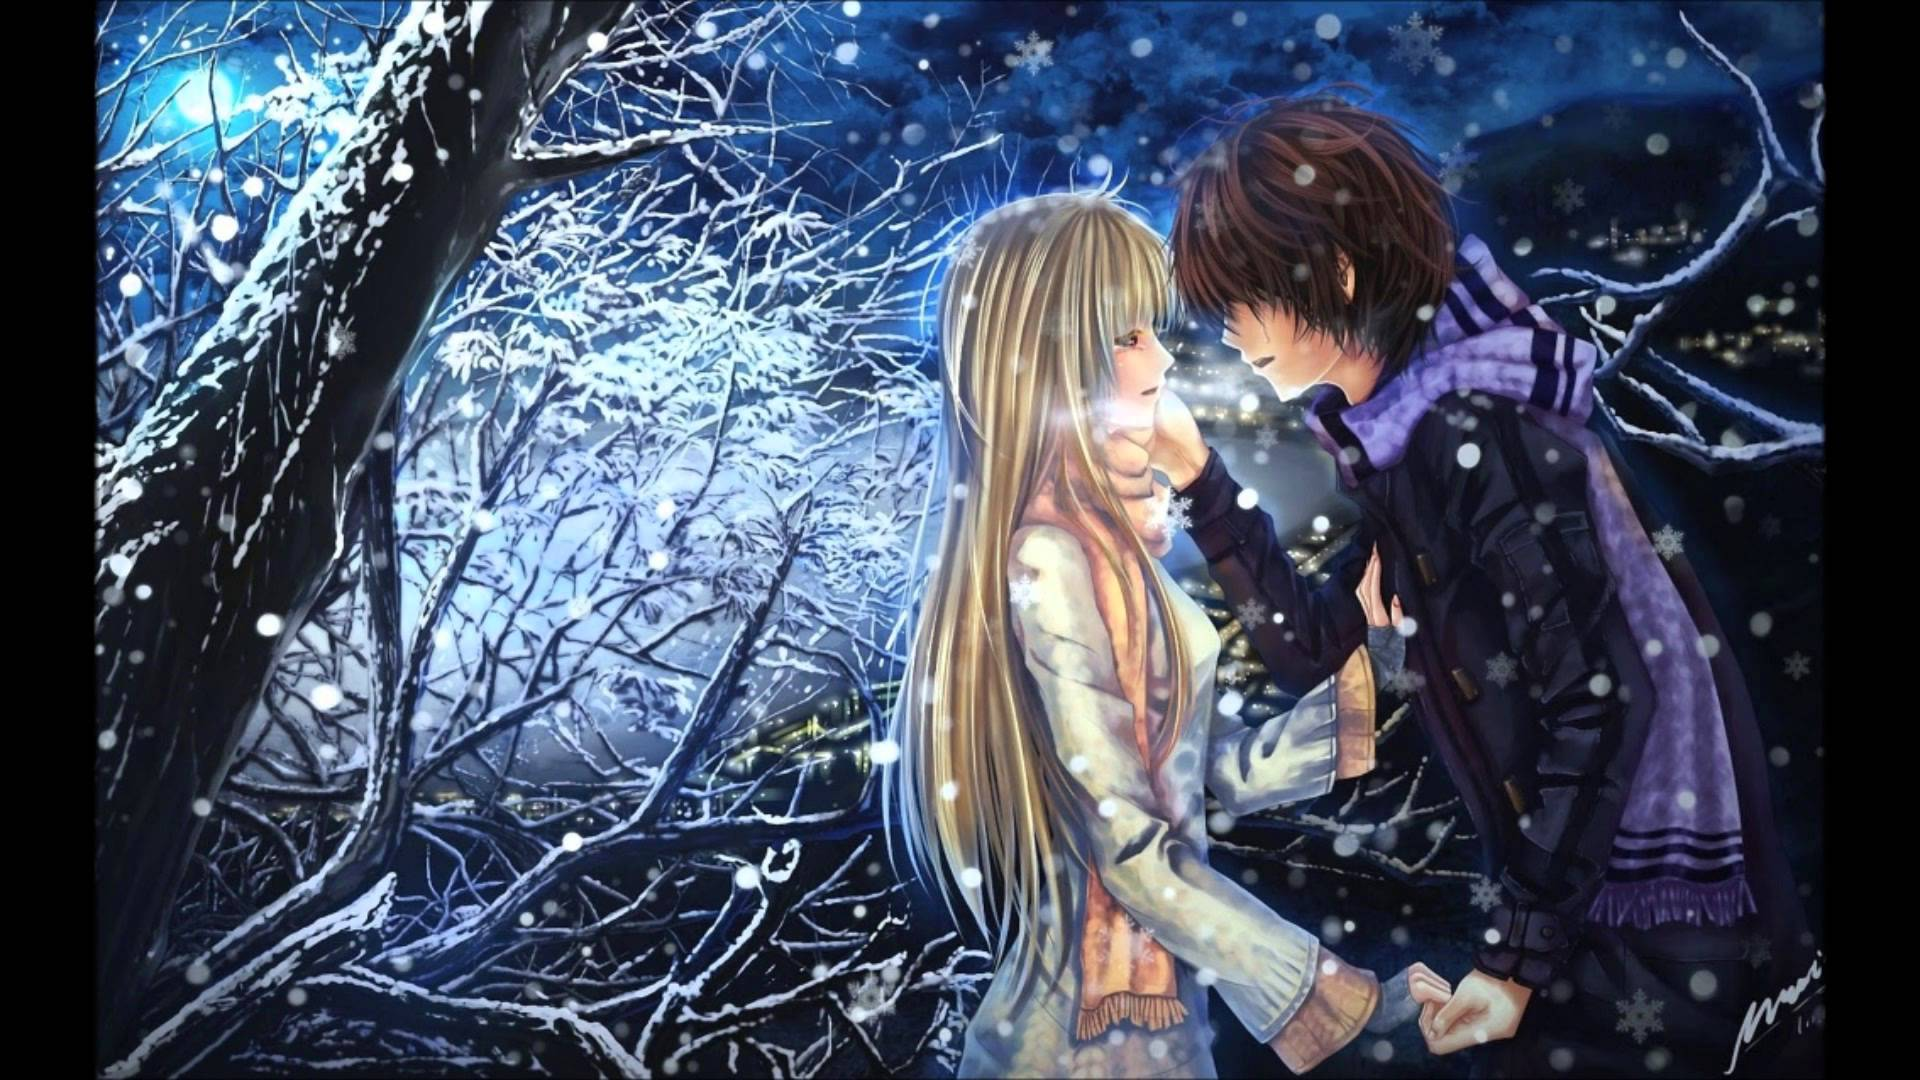 Wallpaper Background Anime Love : Love Anime Wallpapers - Wallpaper cave